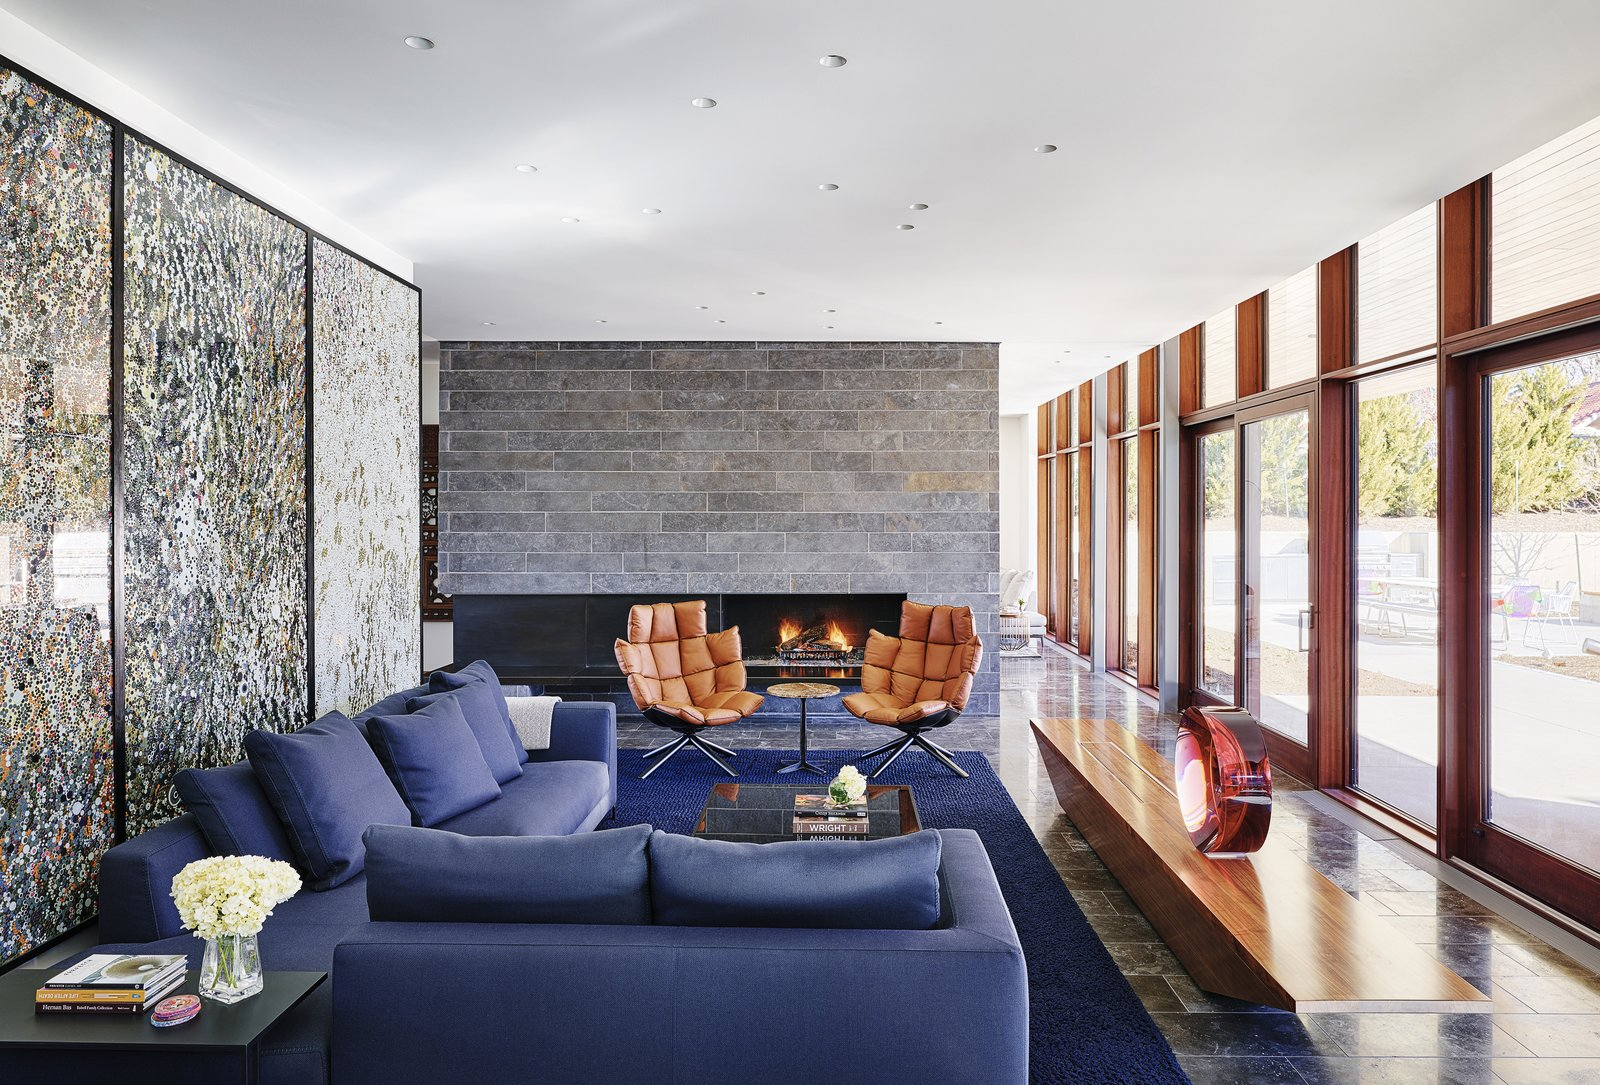 Living Room, Sectional, Coffee Tables, Wood Burning Fireplace, Recessed Lighting, Chair, and Ceiling Lighting A sitting area, complete with a fireplace, is located at the center of the home. Large windows provide direct visual connection to the landscape.     Artery House